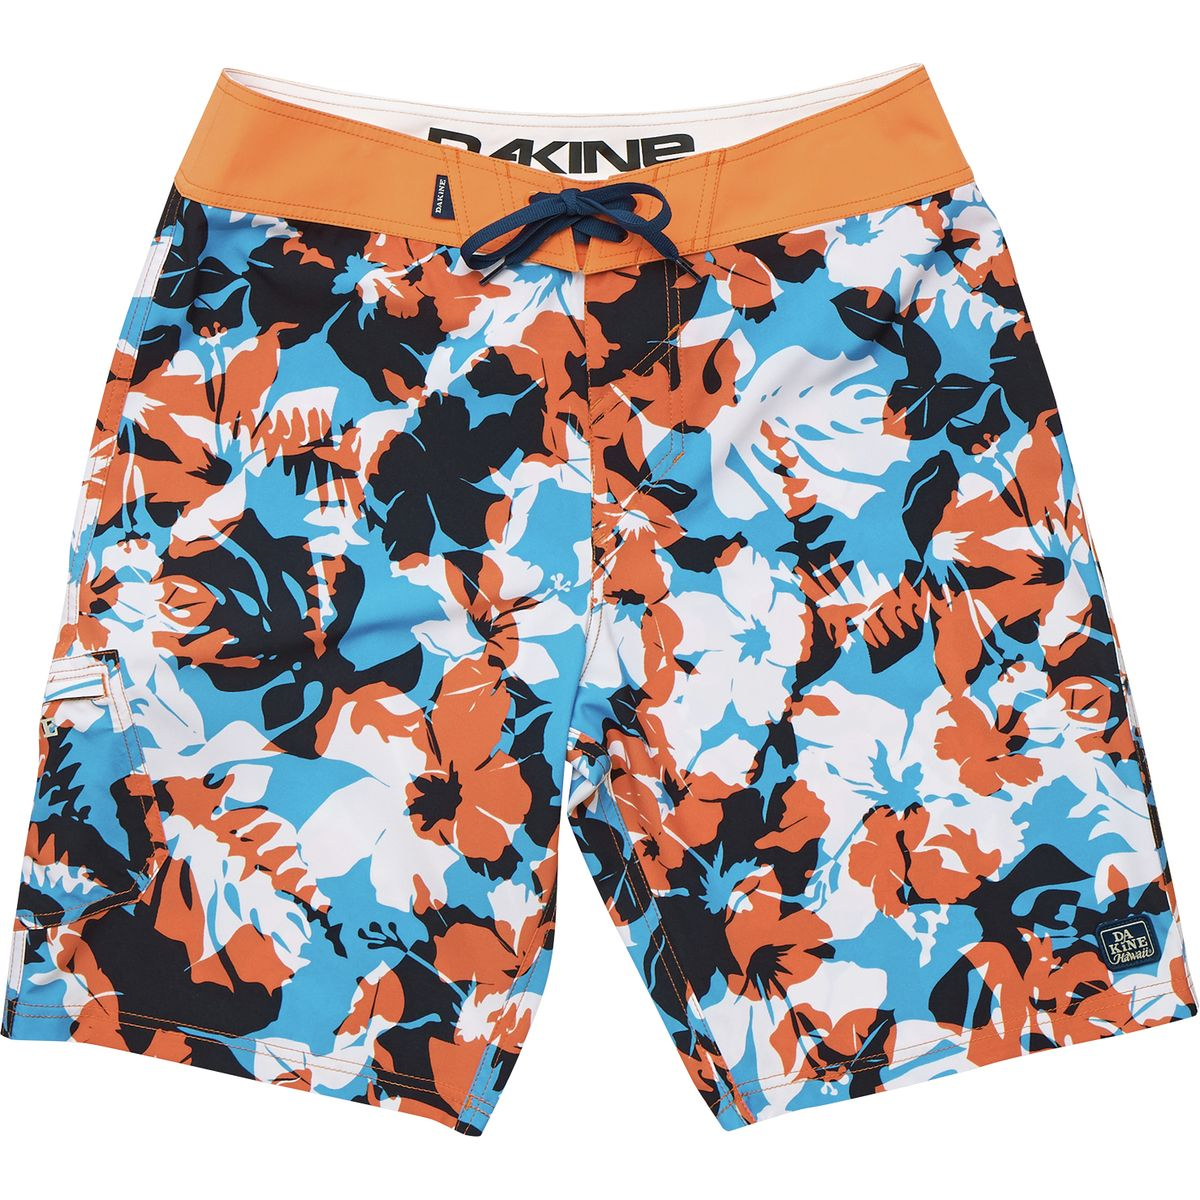 DaKine Shore Break Boardshort